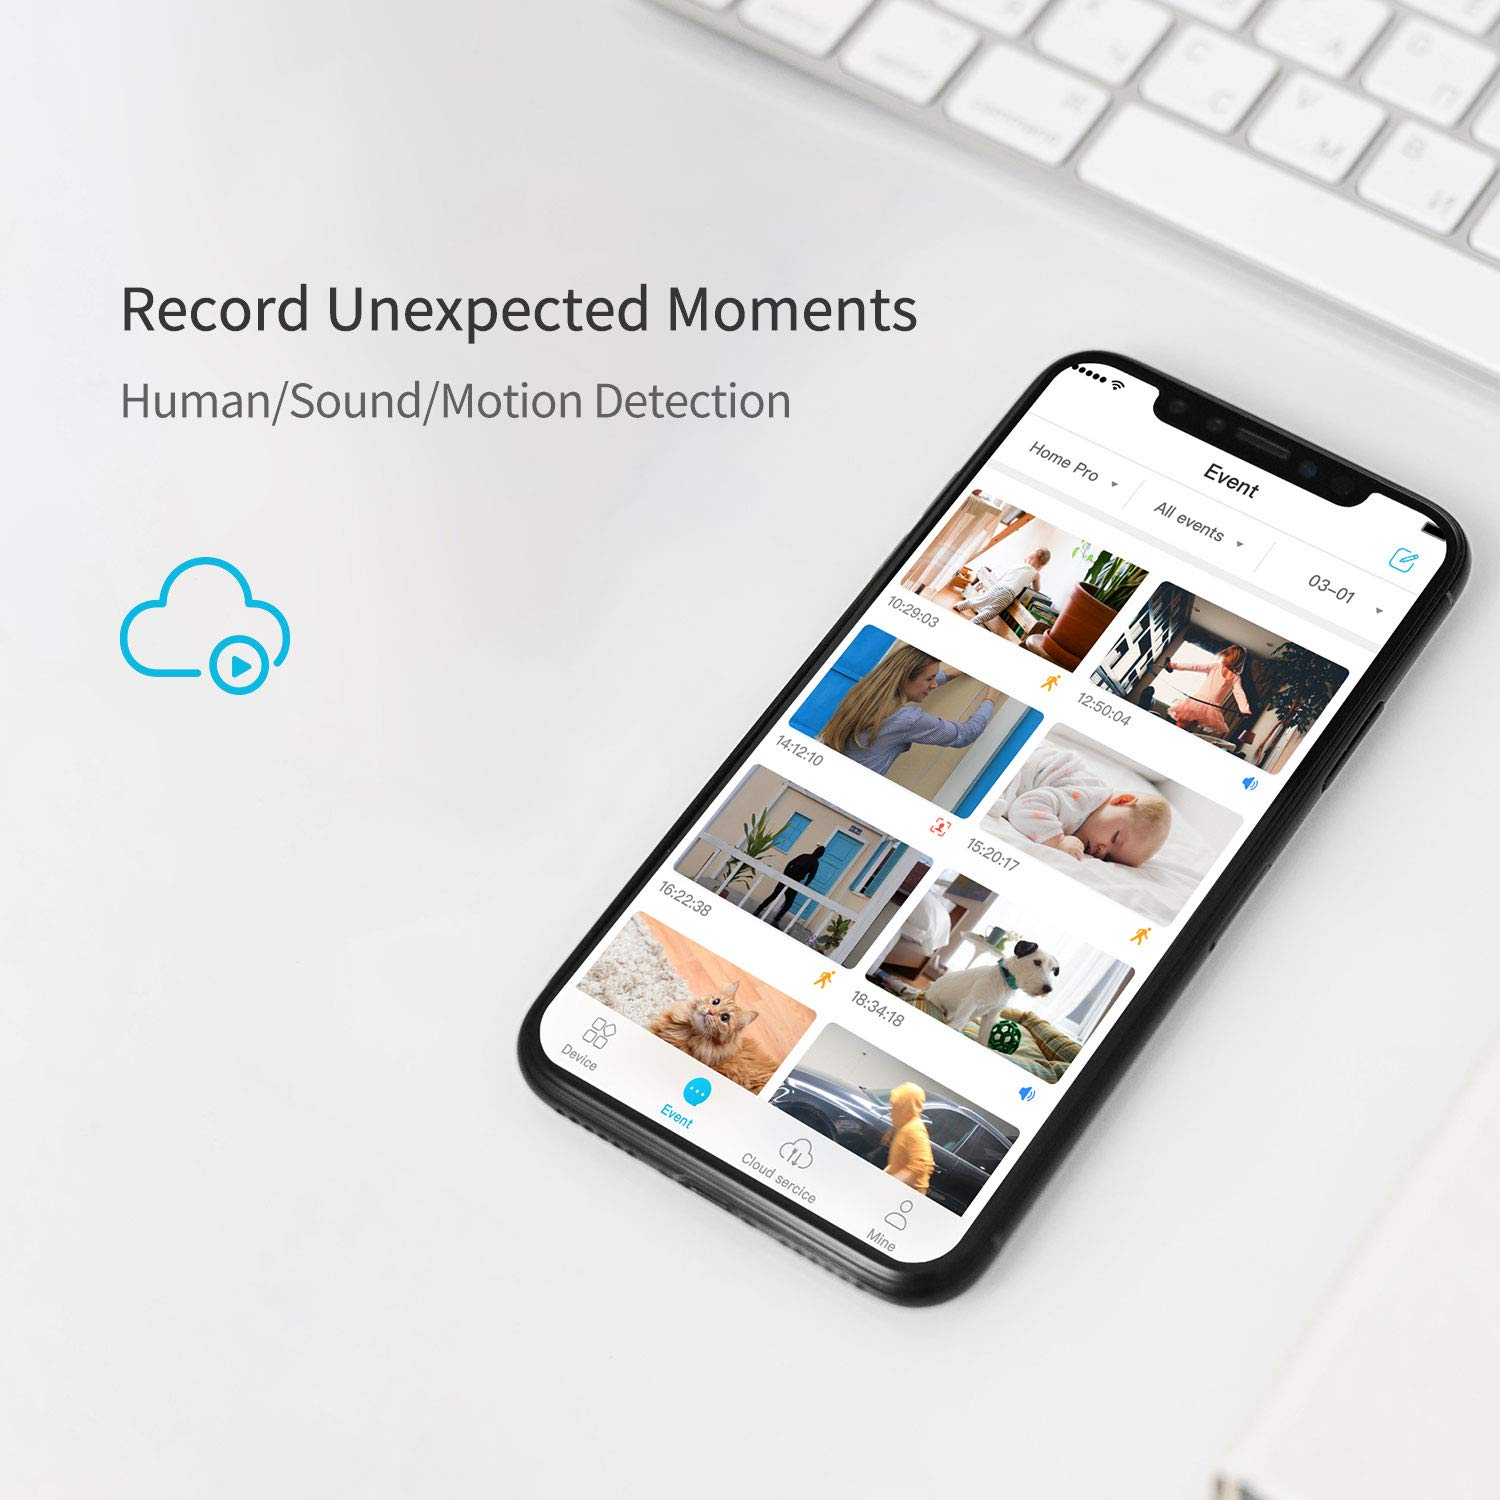 blurams Home Pro, Security Camera 1080p HD | w/ 2-Way Audio and Siren Alarm, Smart AI Human/Sound Detection, Person Alerts, Privacy Mode, Night Vision for Home Monitor | Cloud/Local Storage Available